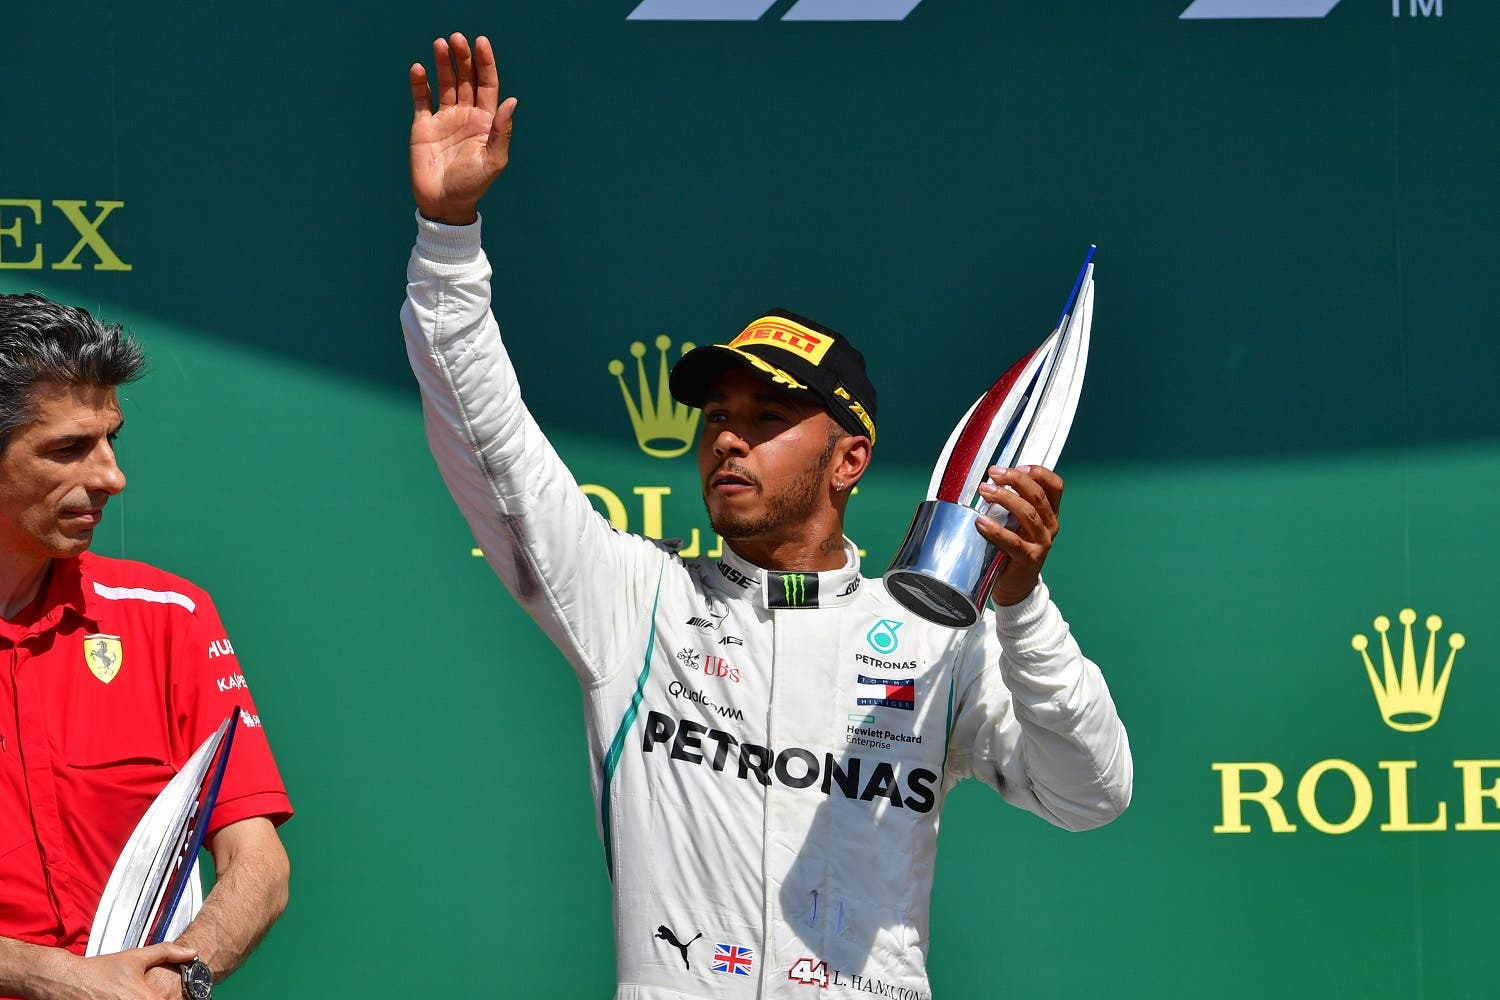 Second-placed Mercedes' British driver Lewis Hamilton celebrates with his trophy on the podium after the British Formula One Grand Prix at the Silverstone motor racing circuit in Silverstone, central England, on July 8, 2018. (AFP)